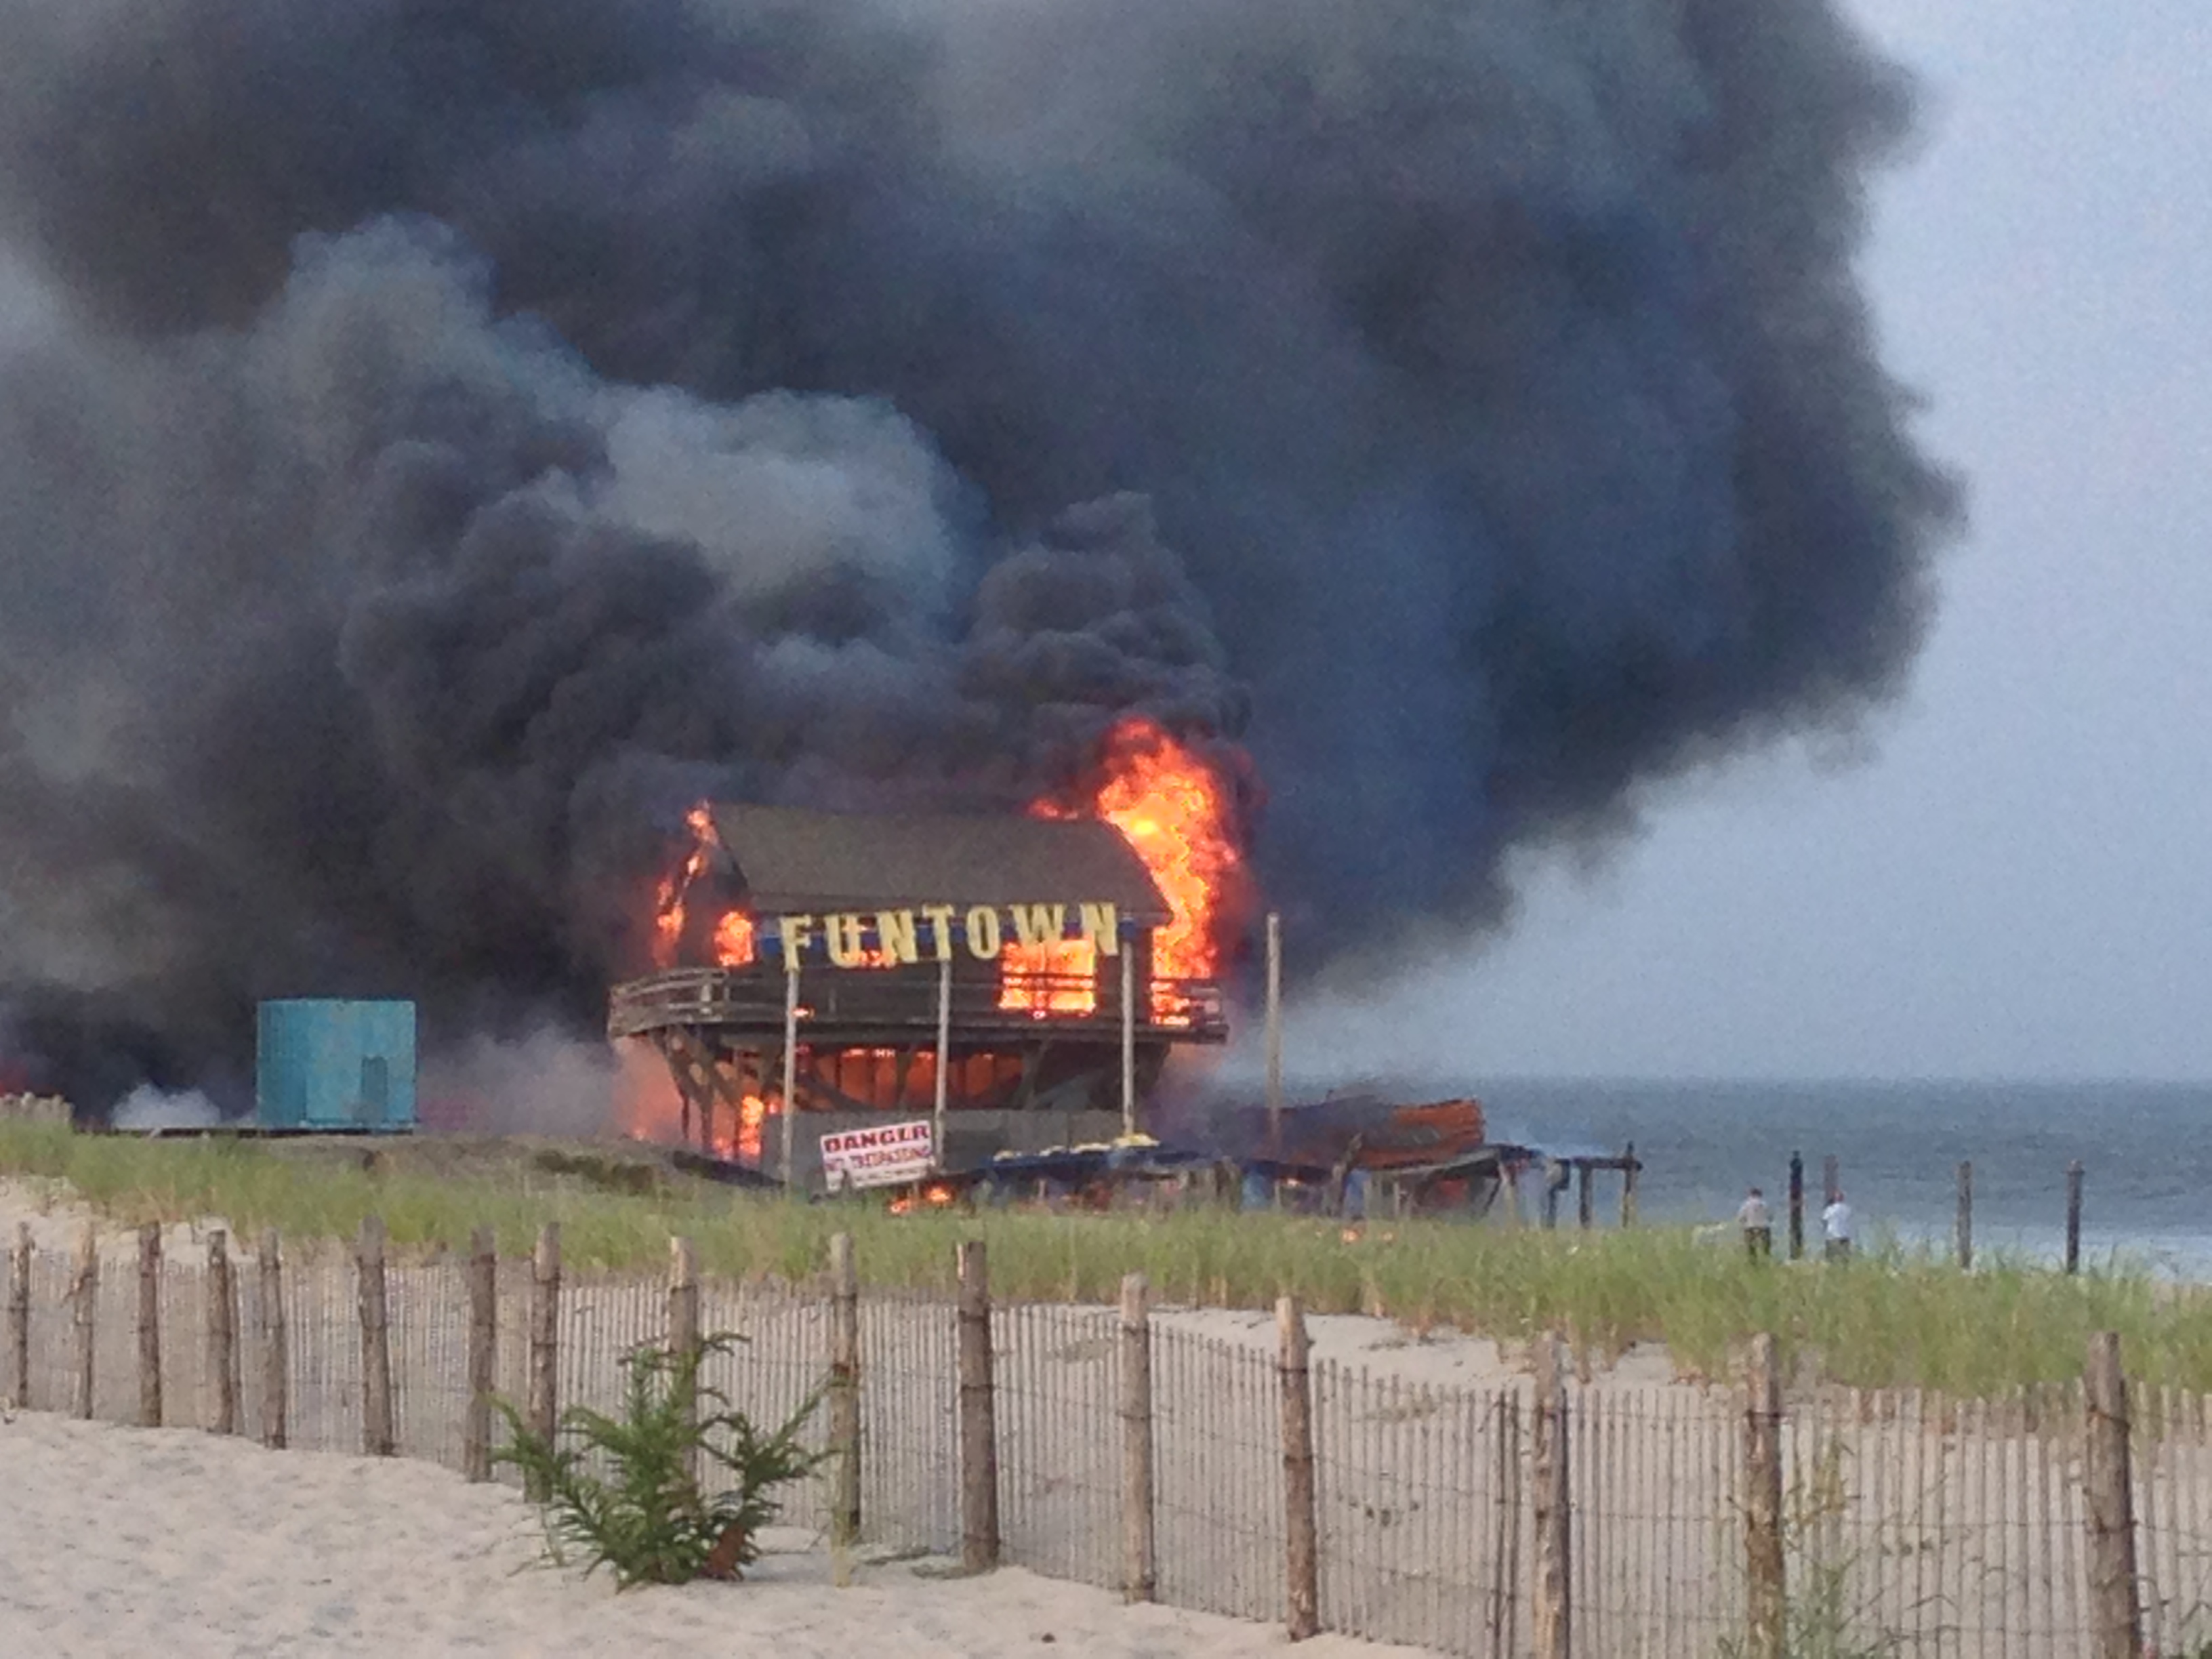 Funtown Pier, consumed by fire, Sept. 12, 2013. (Photo: Daniel Nee)